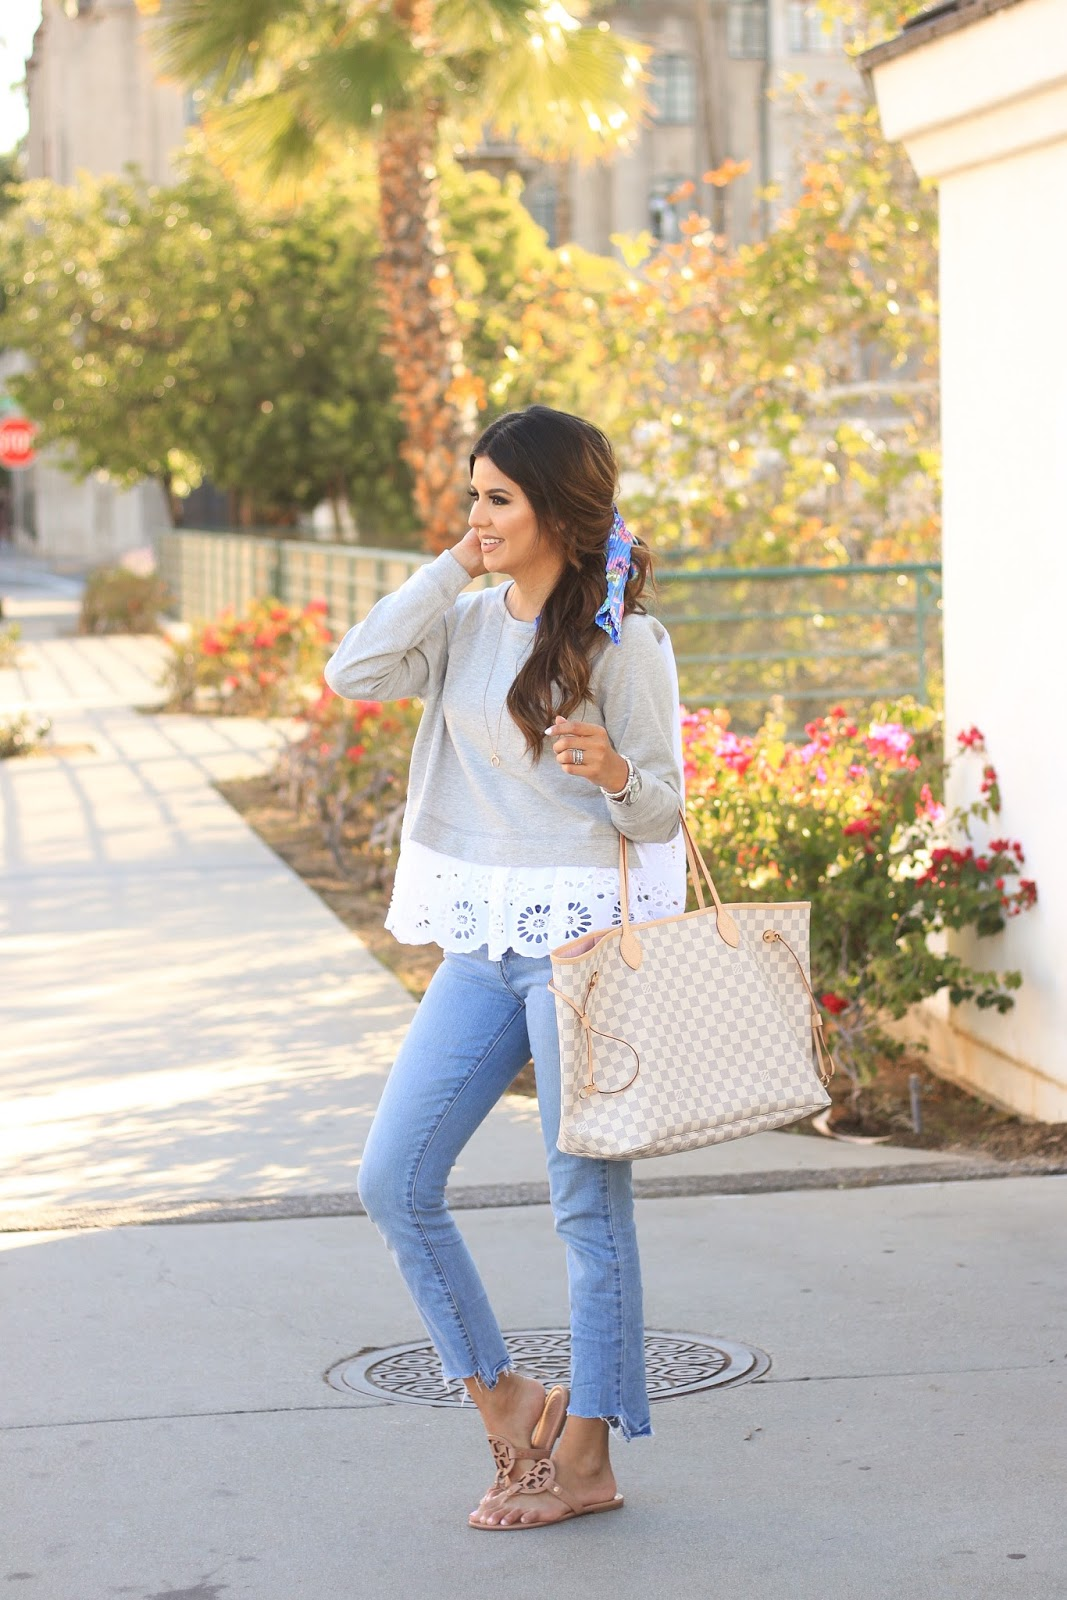 Eyelet Sweatshirt and floral hair scarf outfit for Spring